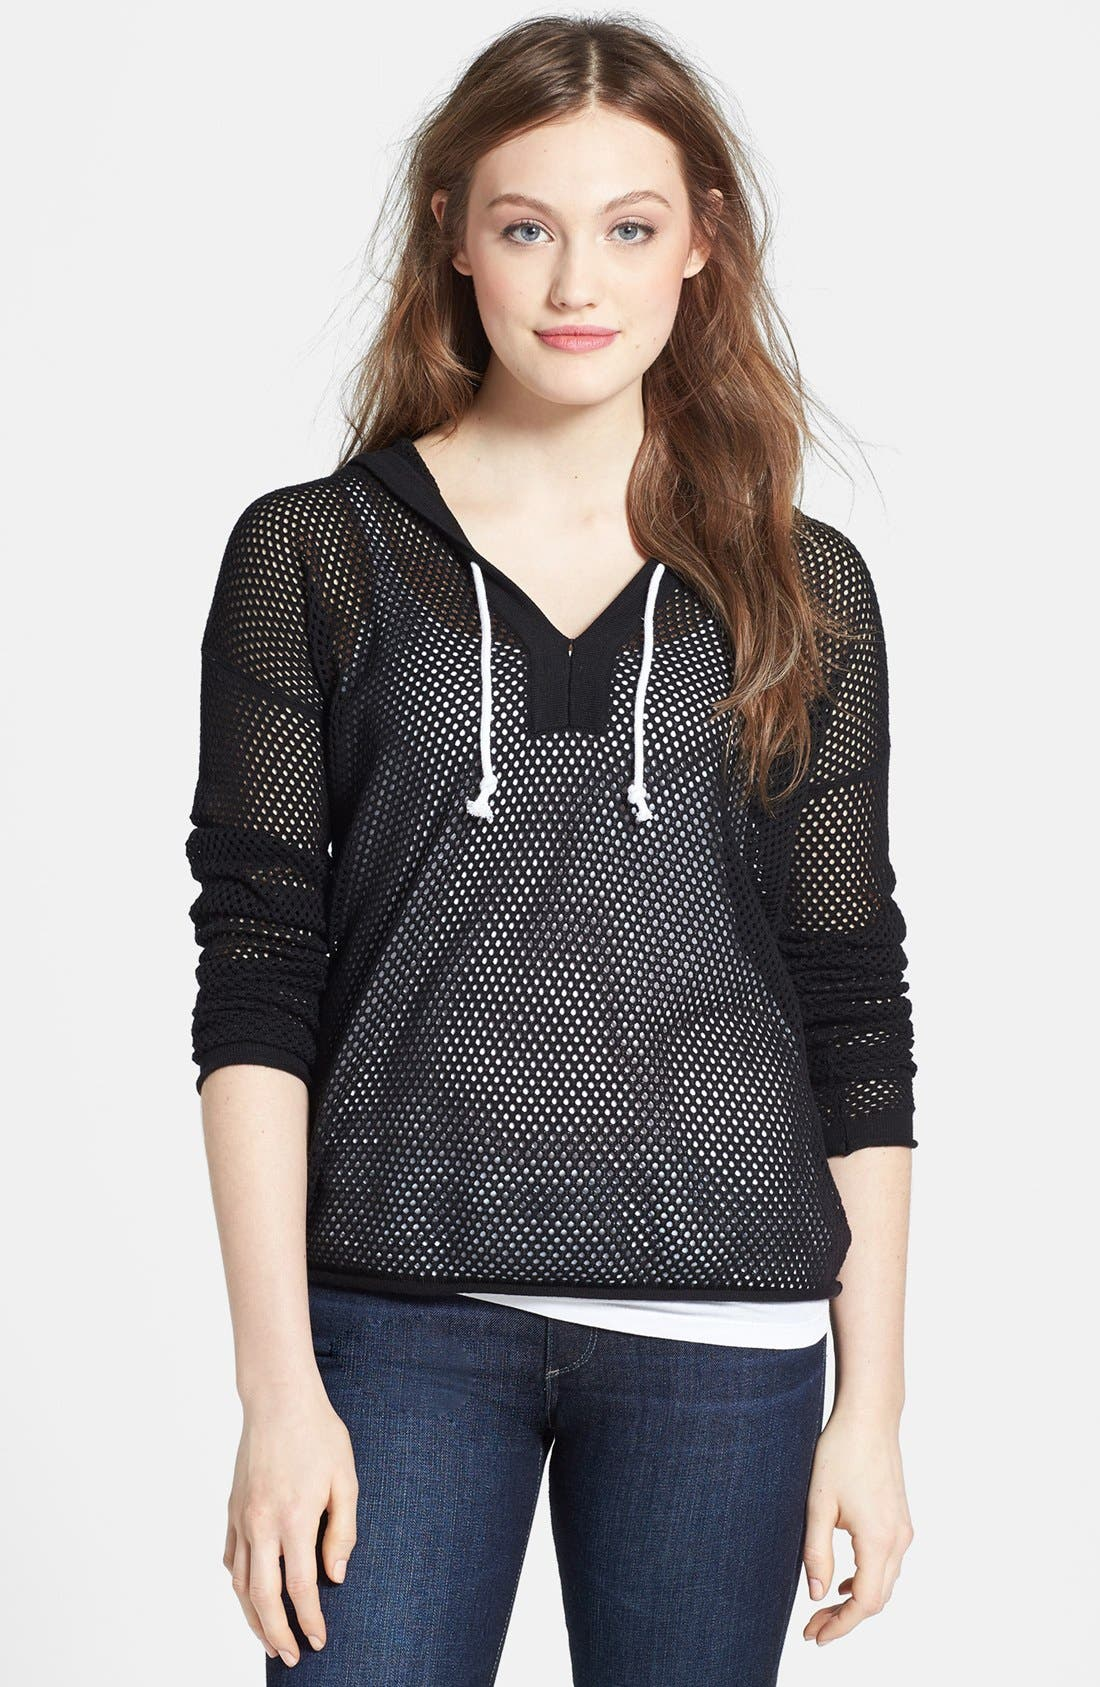 SWEET ROMEO 'Ava' Hooded Open Stitch Sweater, Main, color, 003